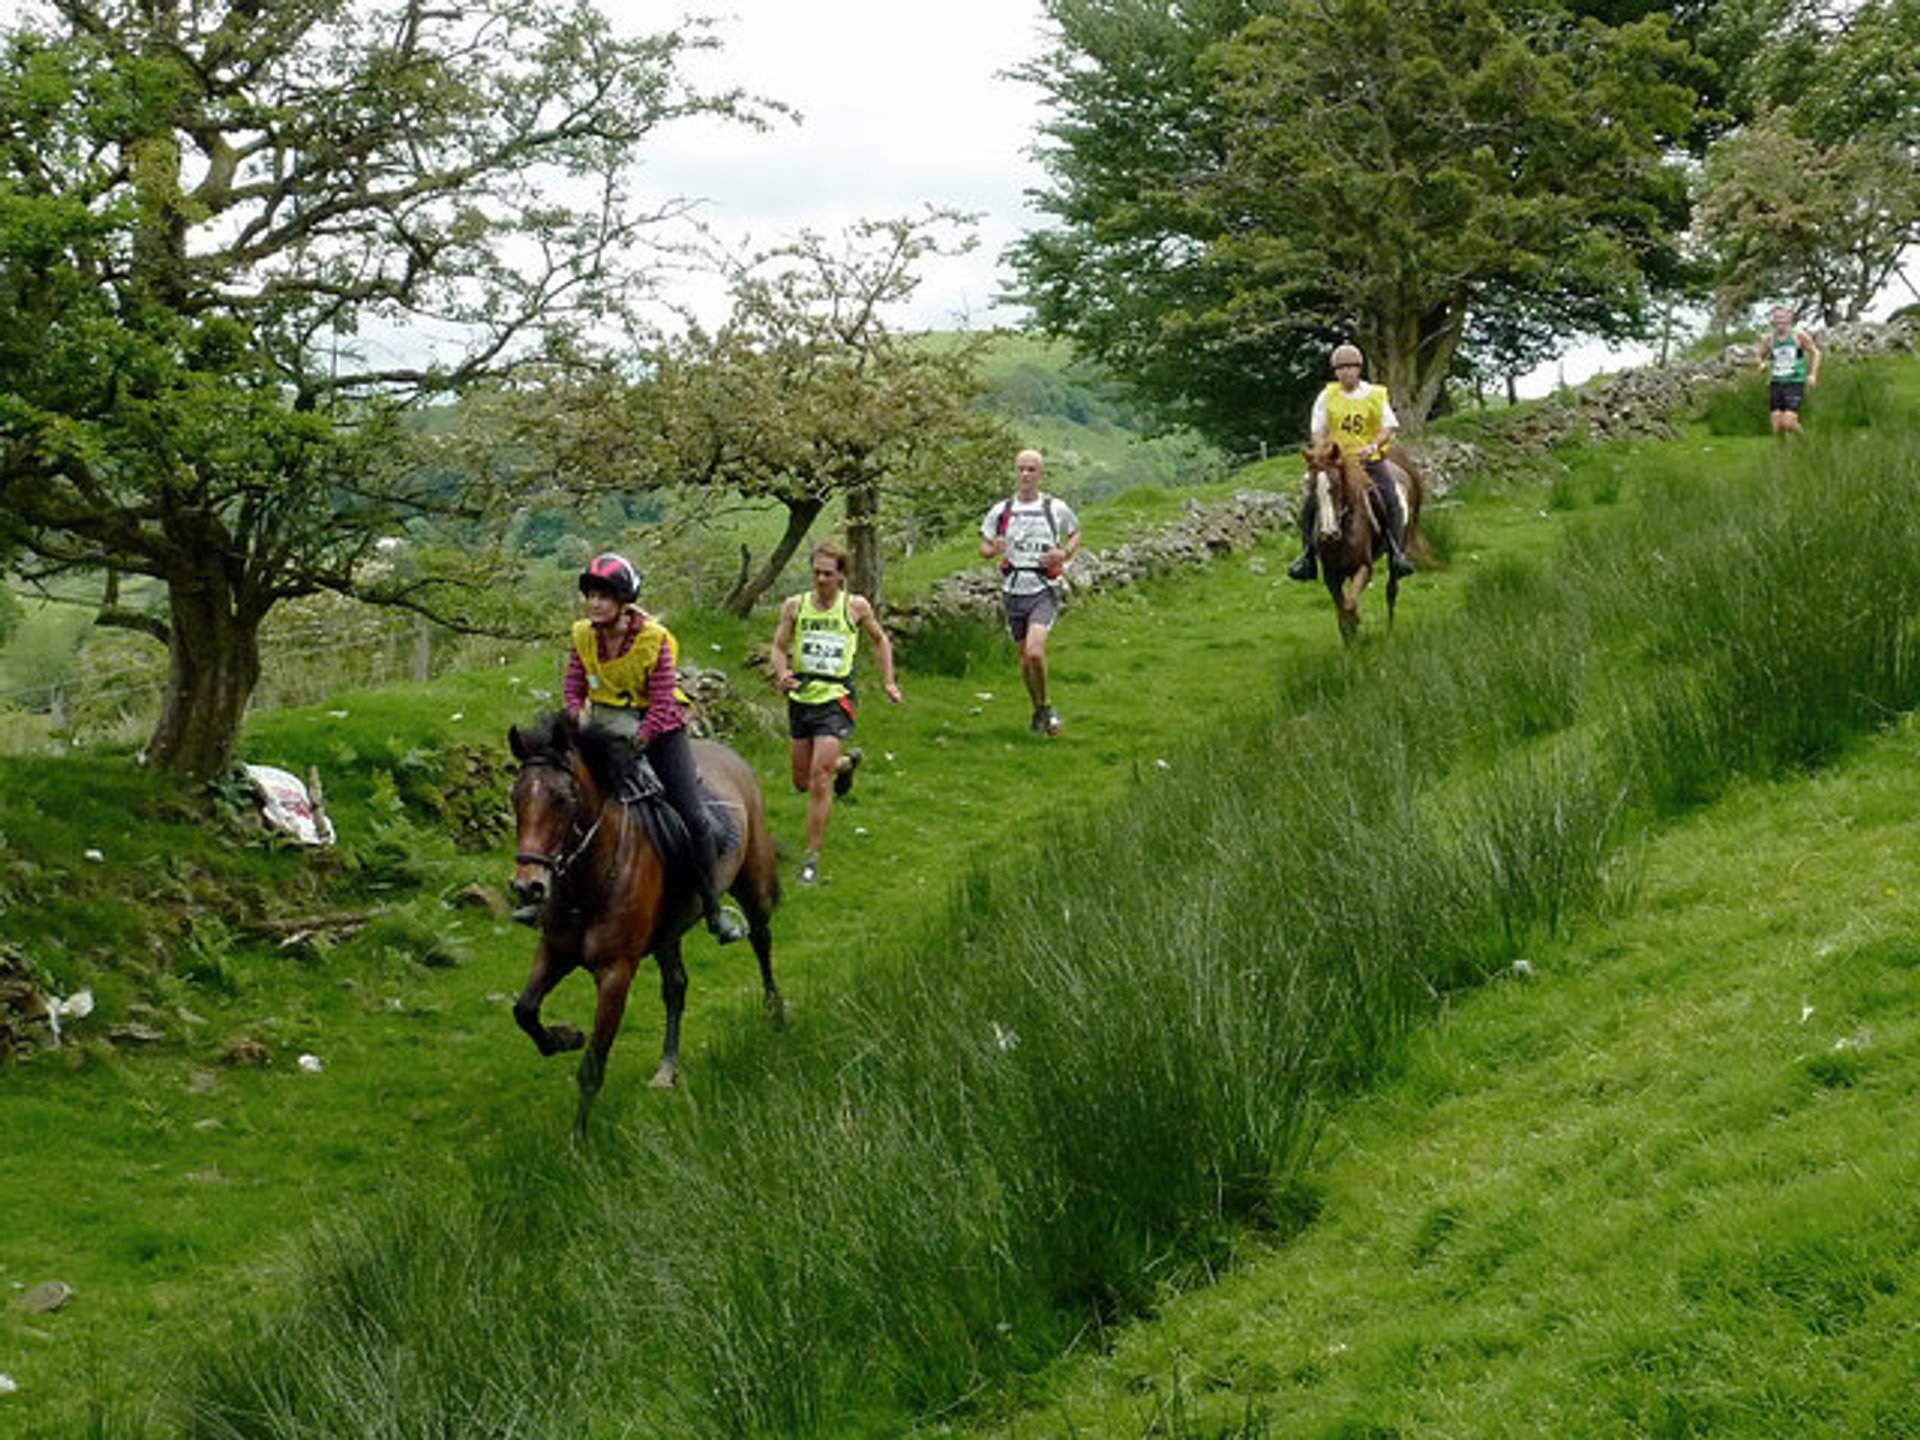 Man v Horse Marathon in Wales 2020 - Best Time